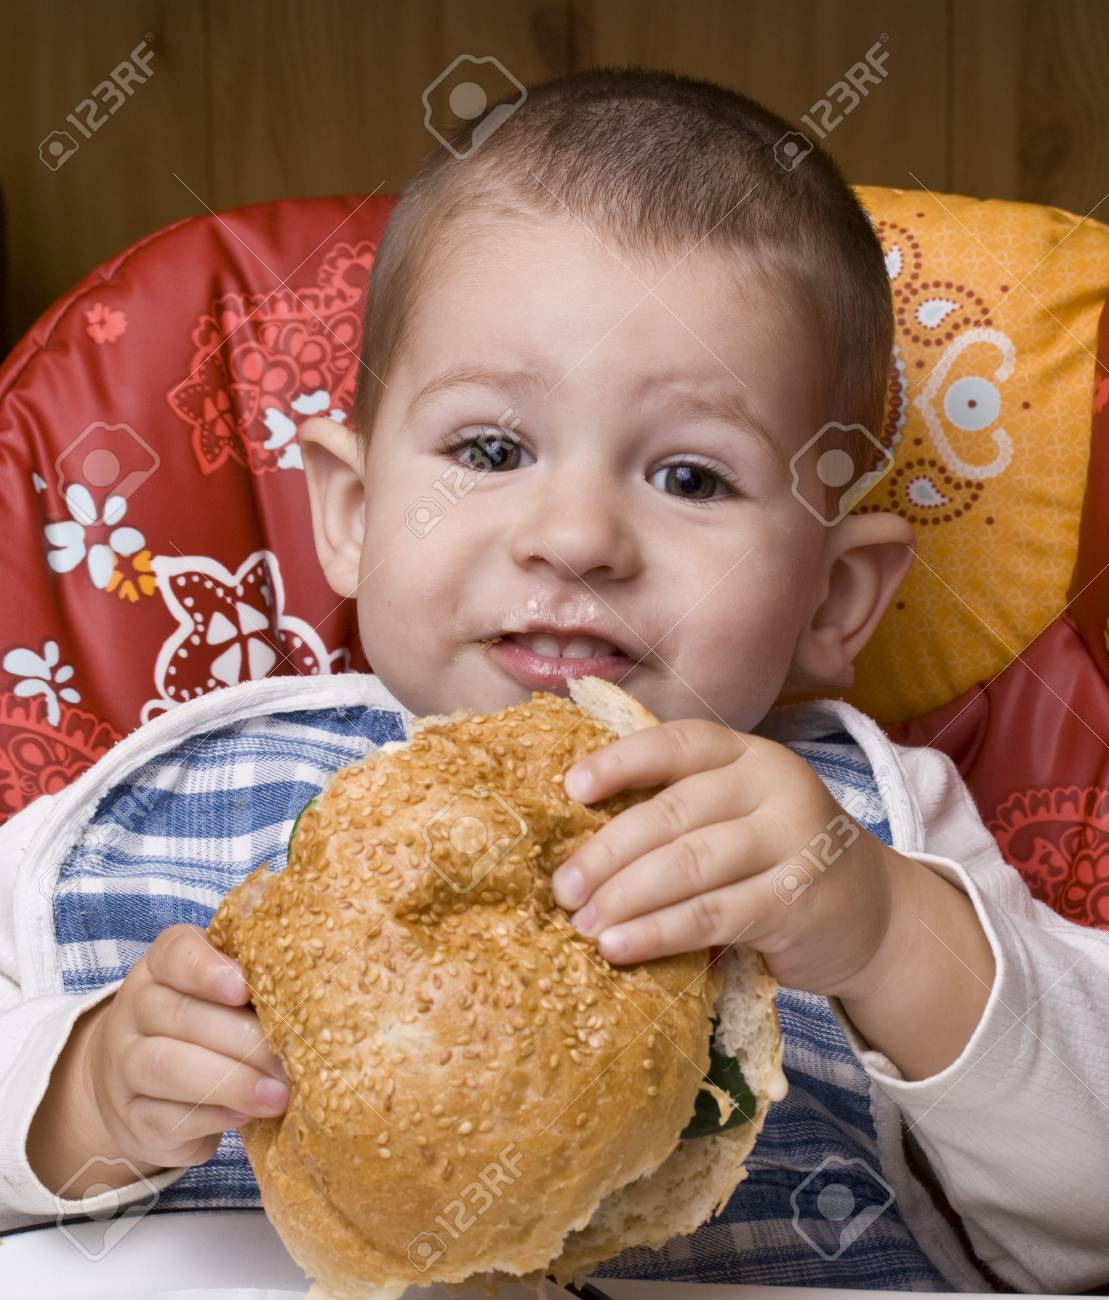 The little happy boy eating a tasty hamburger Stock Photo - 8306621